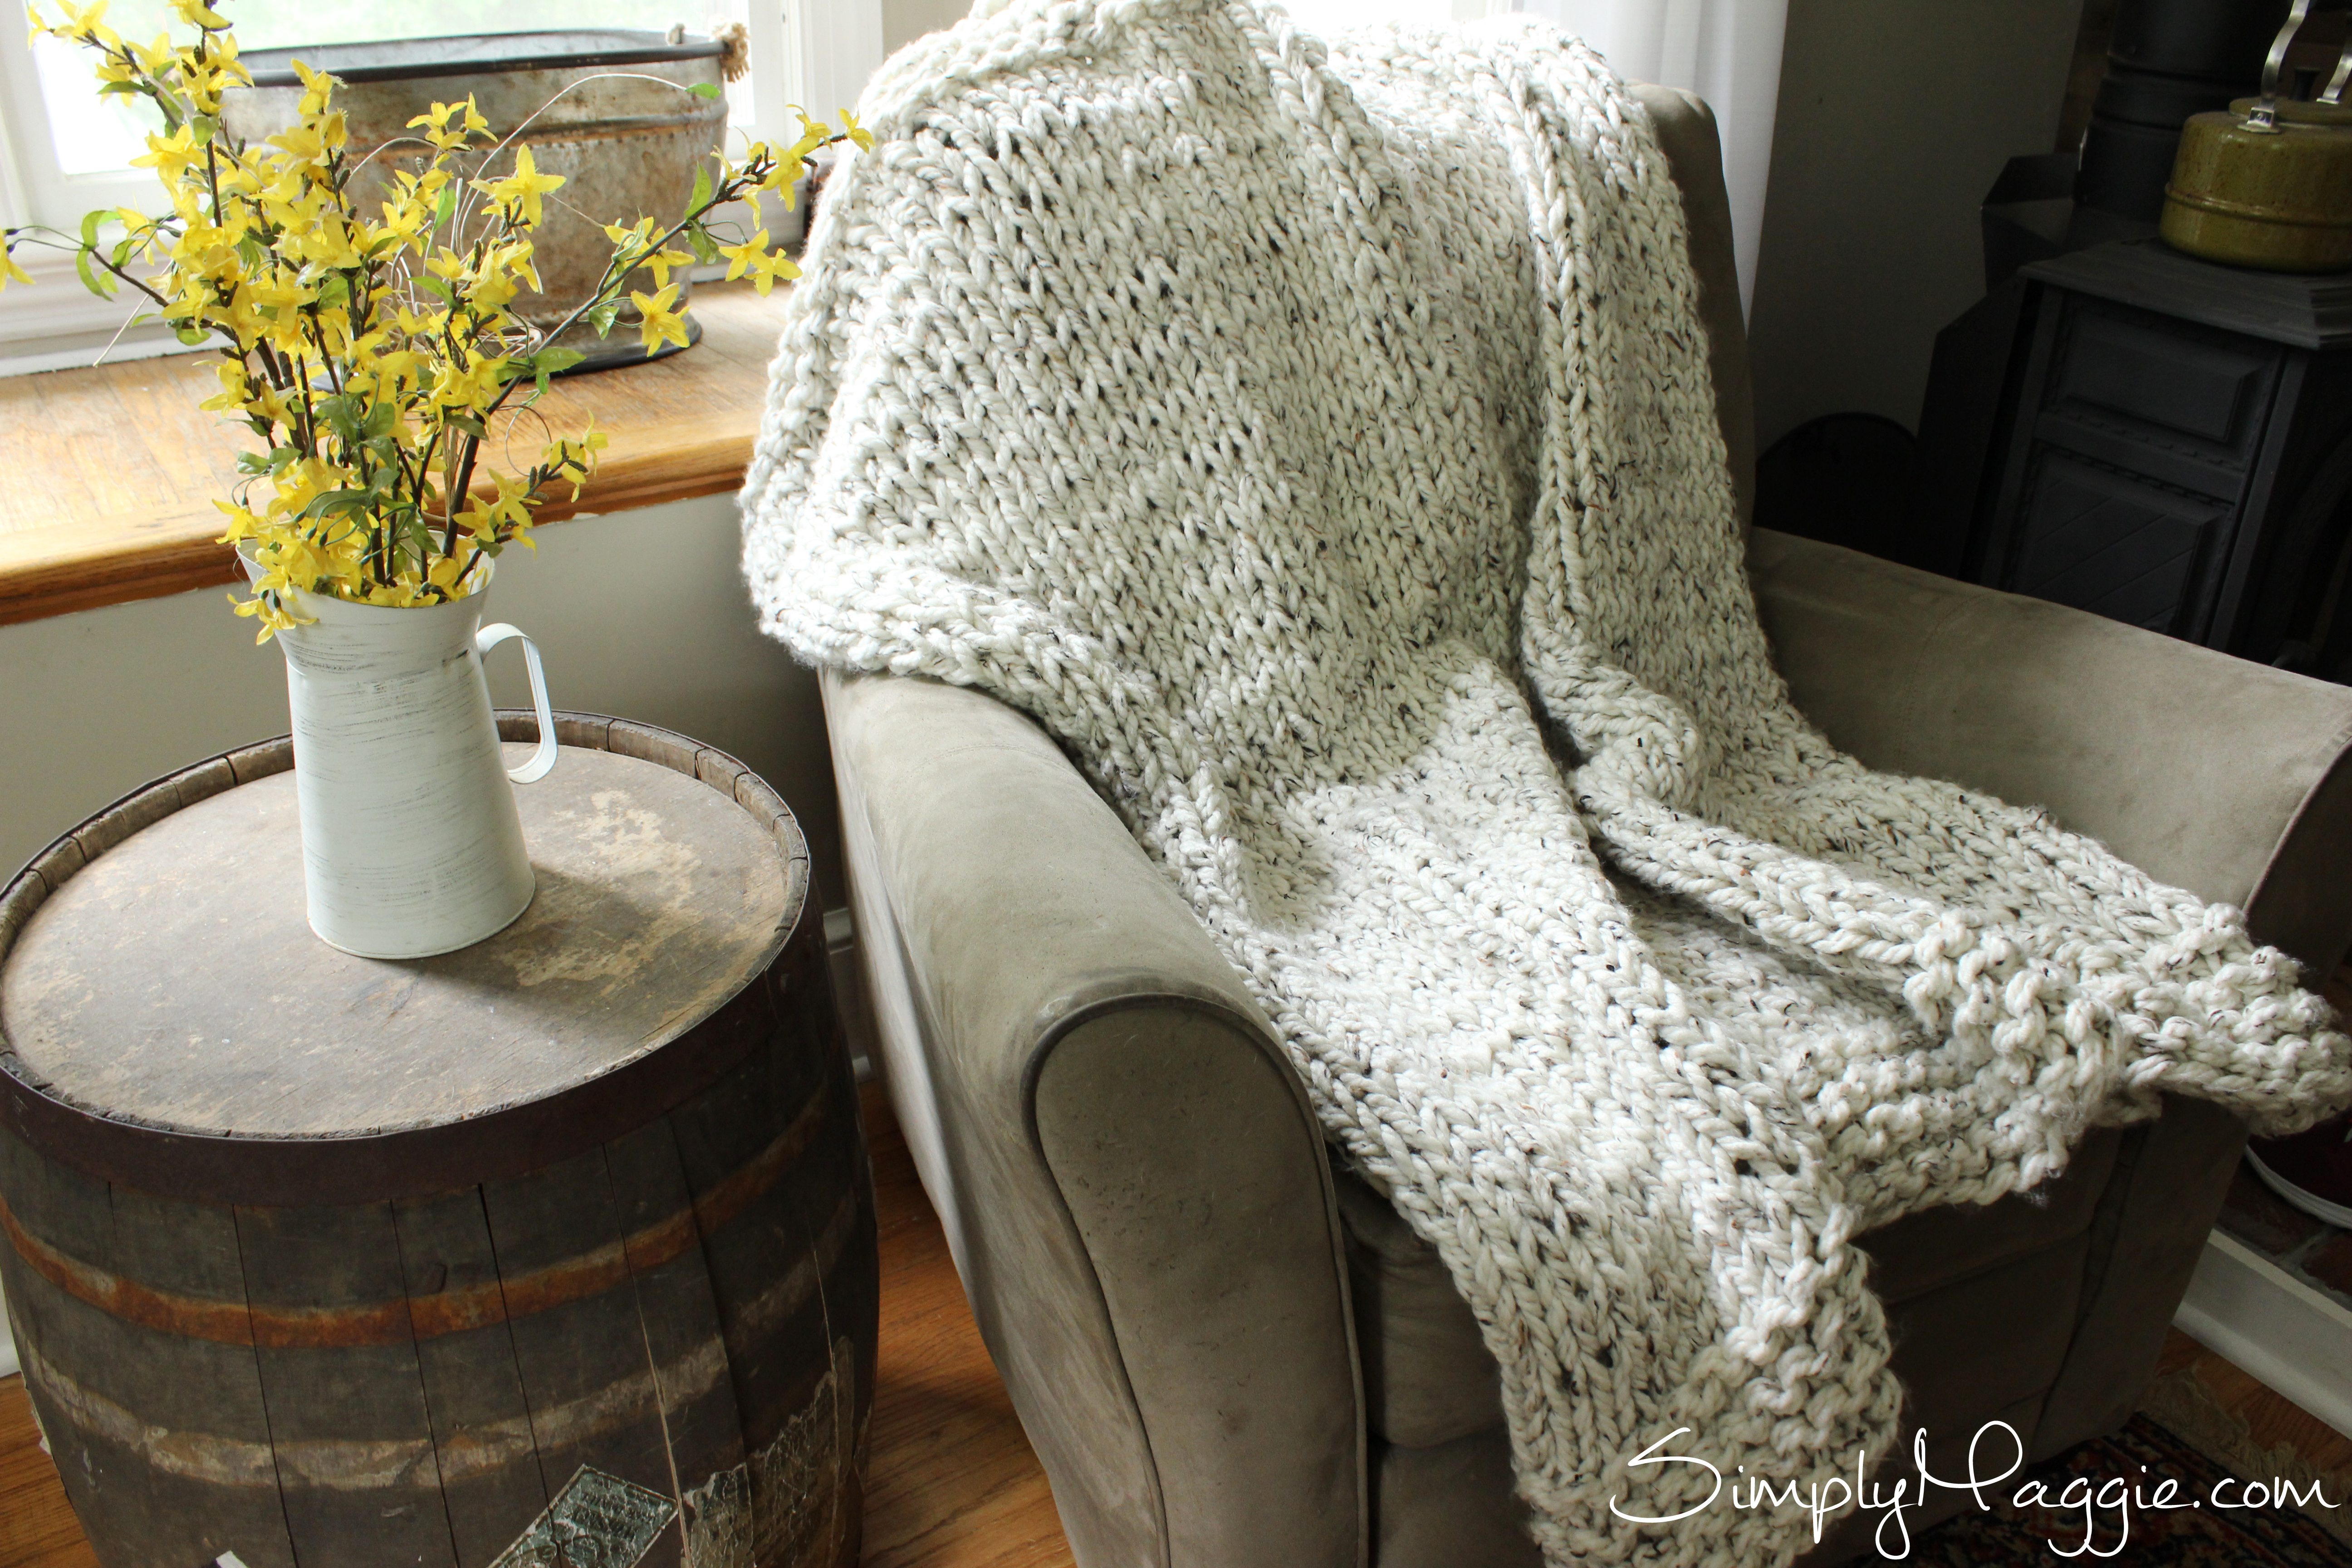 Giant Knit Blanket Pattern : Giant Knitting - Lush Blanket Pattern SimplyMaggie.com